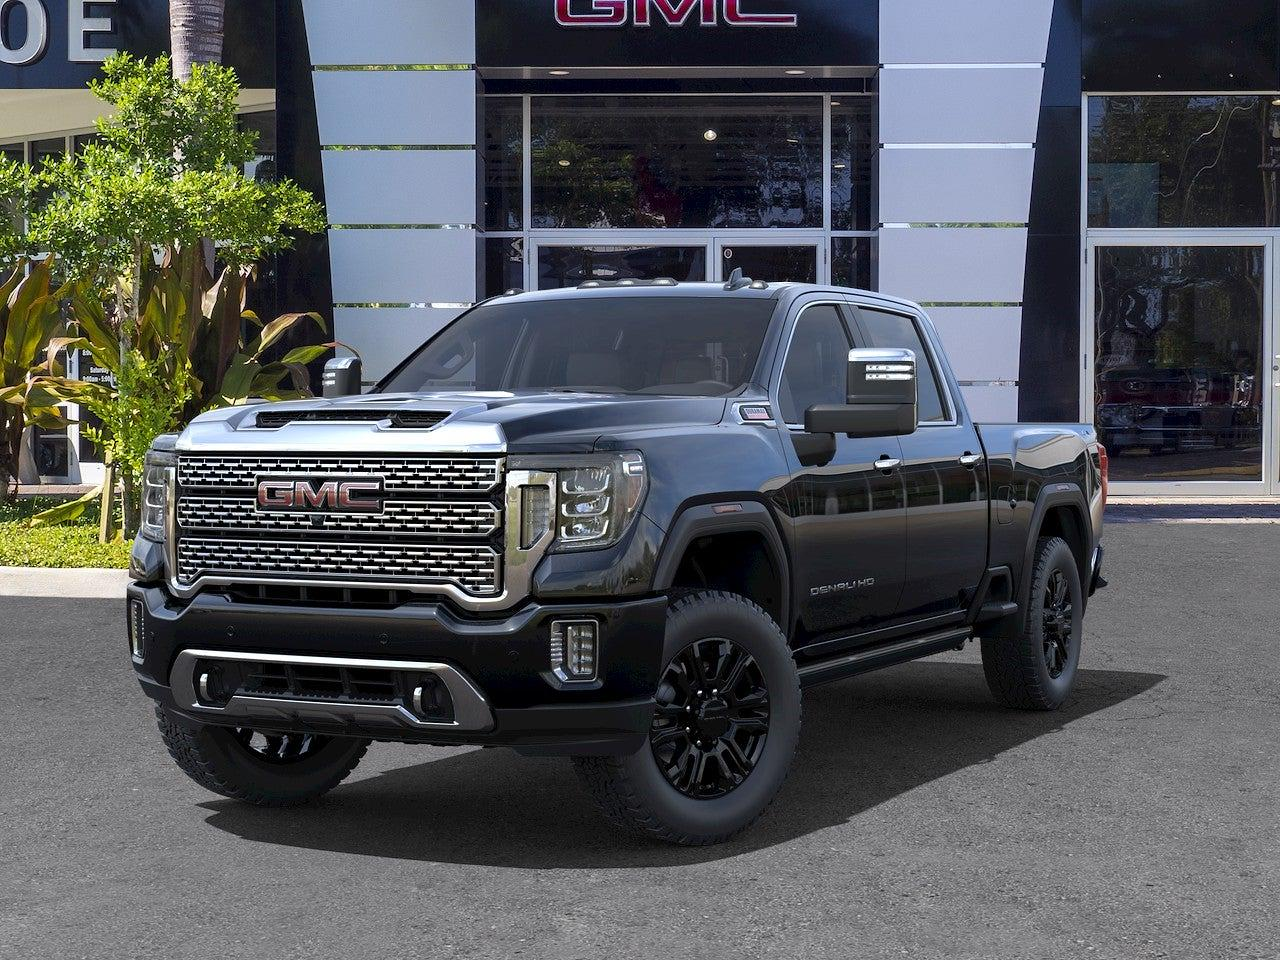 2021 GMC Sierra 2500 Crew Cab 4x4, Pickup #T21308W - photo 31